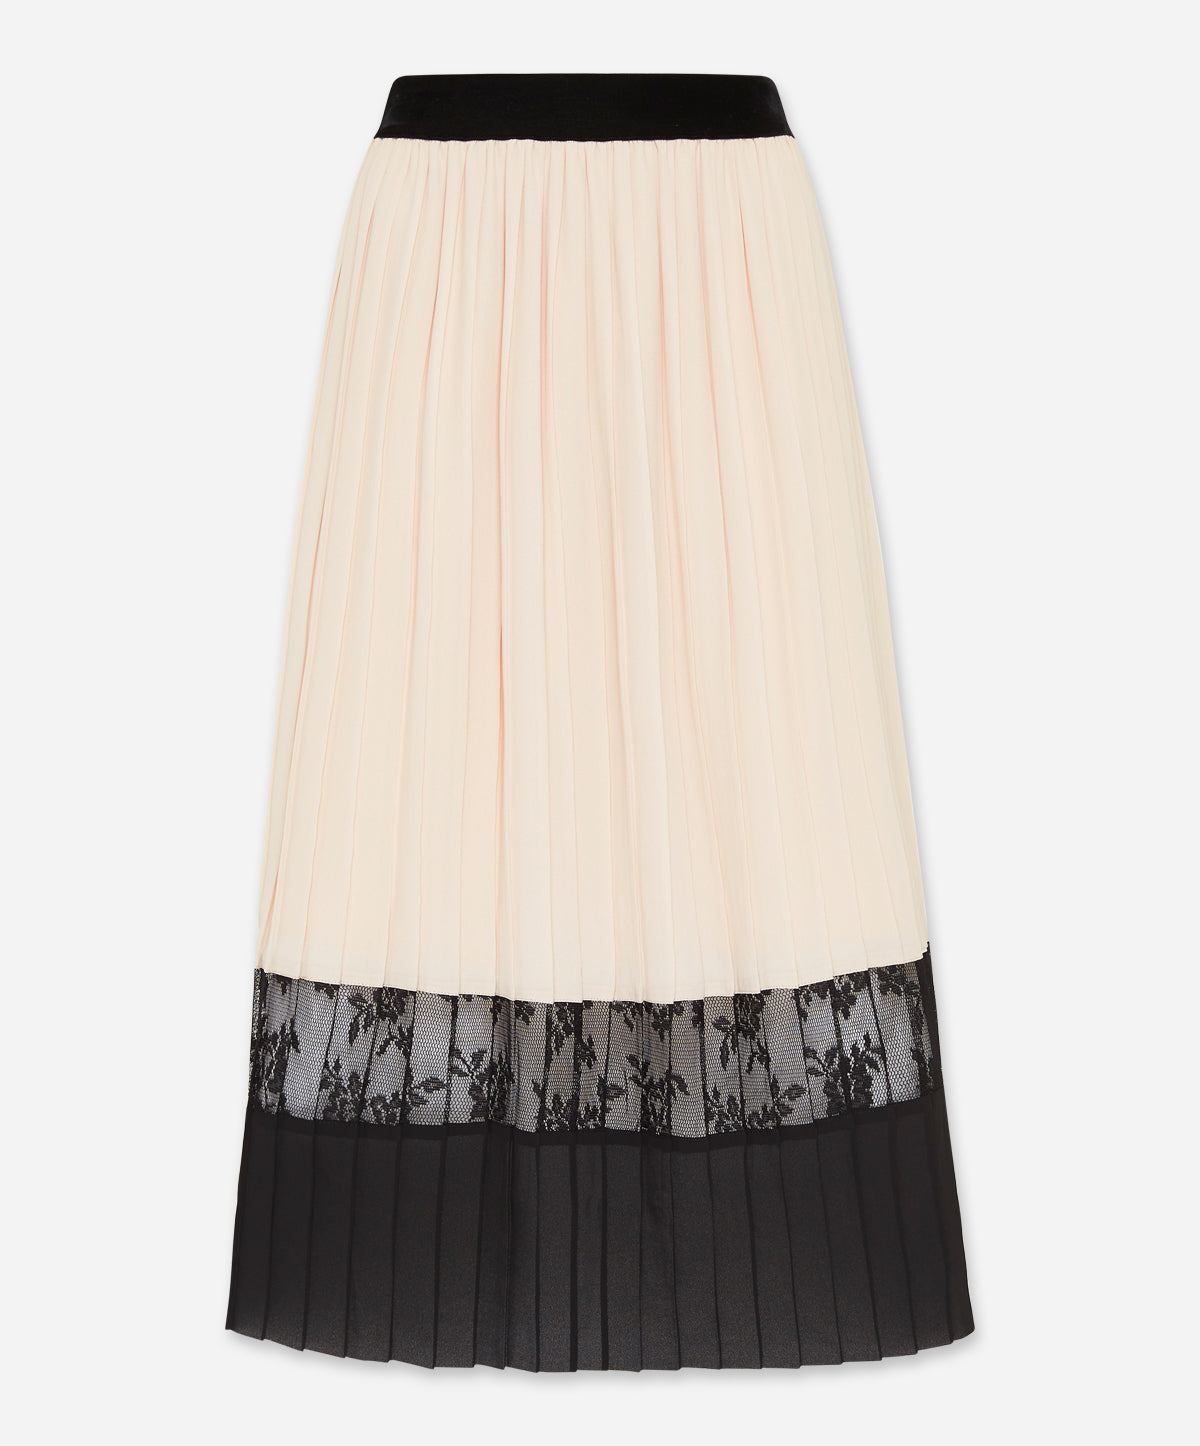 Chamonix Lace Skirt